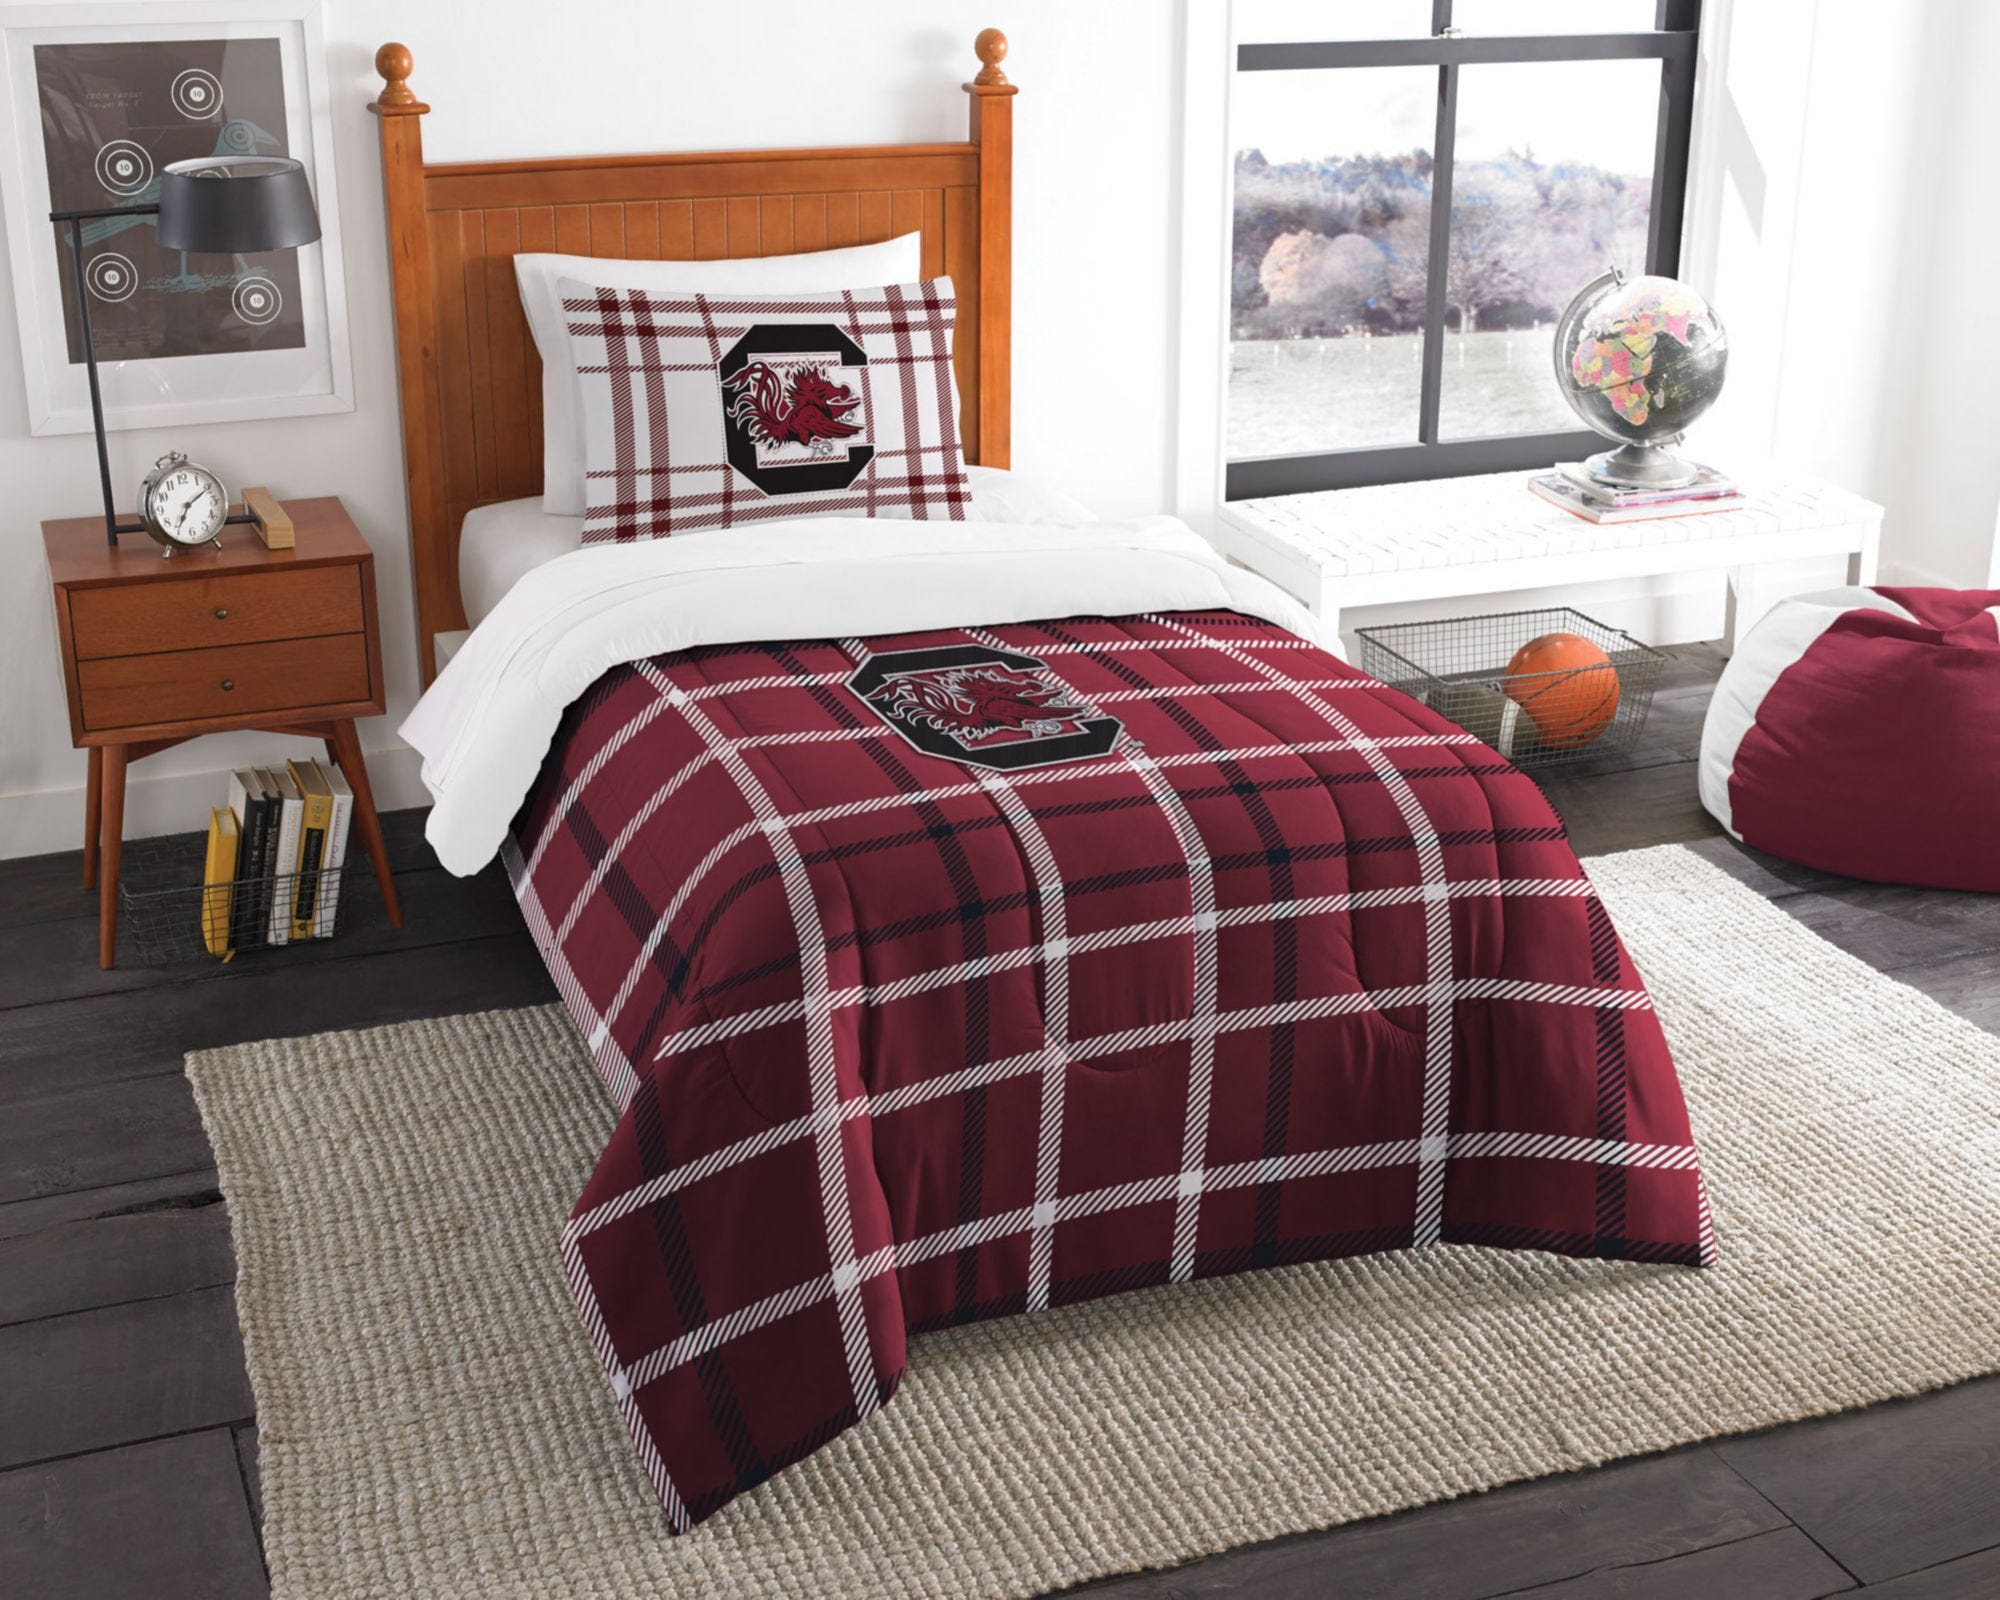 Camping & Outdoor Decken & Inletts The Northwest Company Officially Licensed Ncaa South Carolina Gamecocks Fullb...